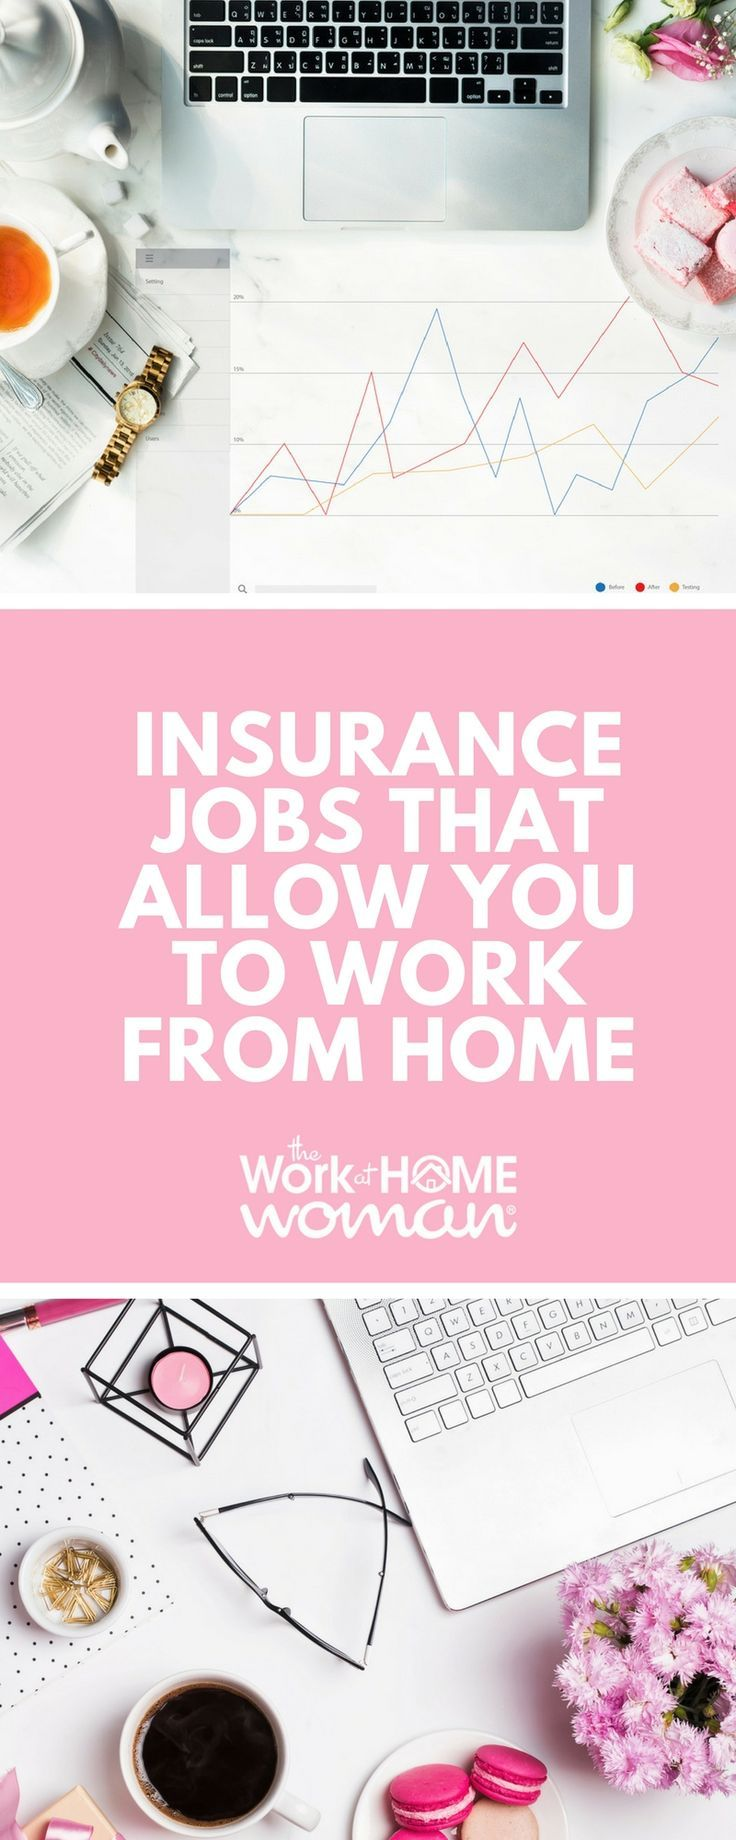 Would You Like A Work At Home Home Insurance Job Read On To See